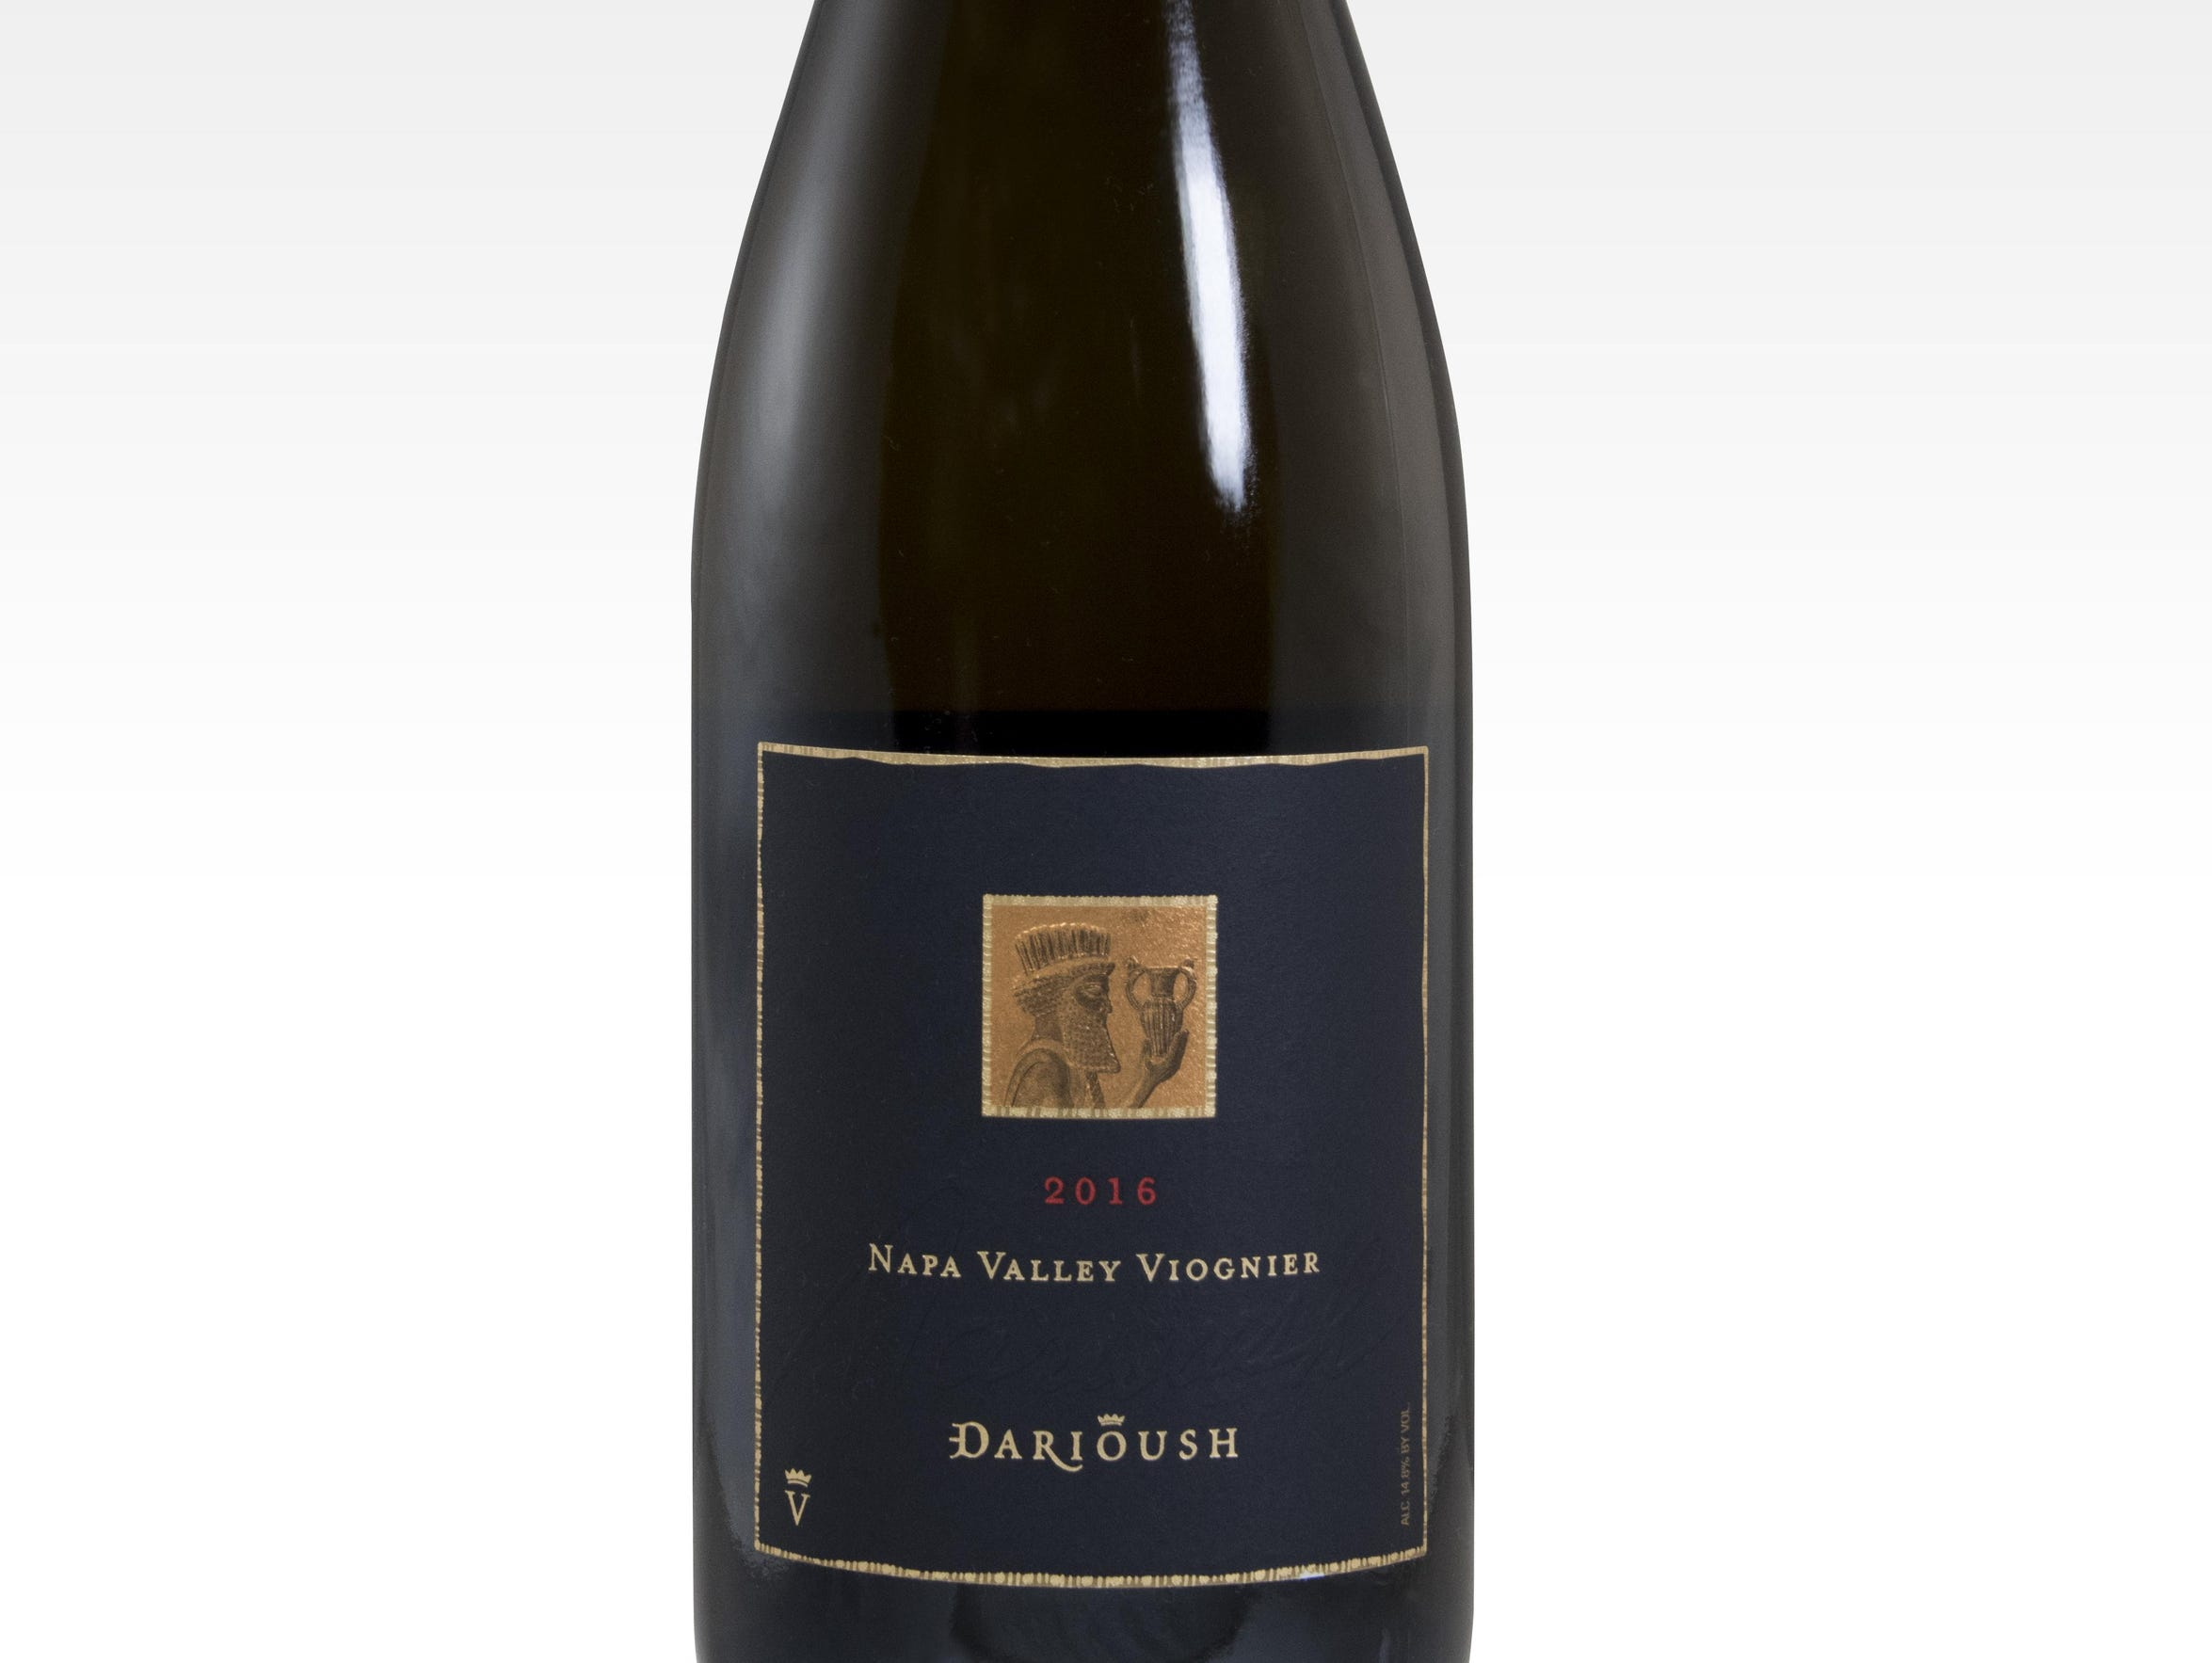 The '16 Darioush Napa Valley viognier leads off dinner